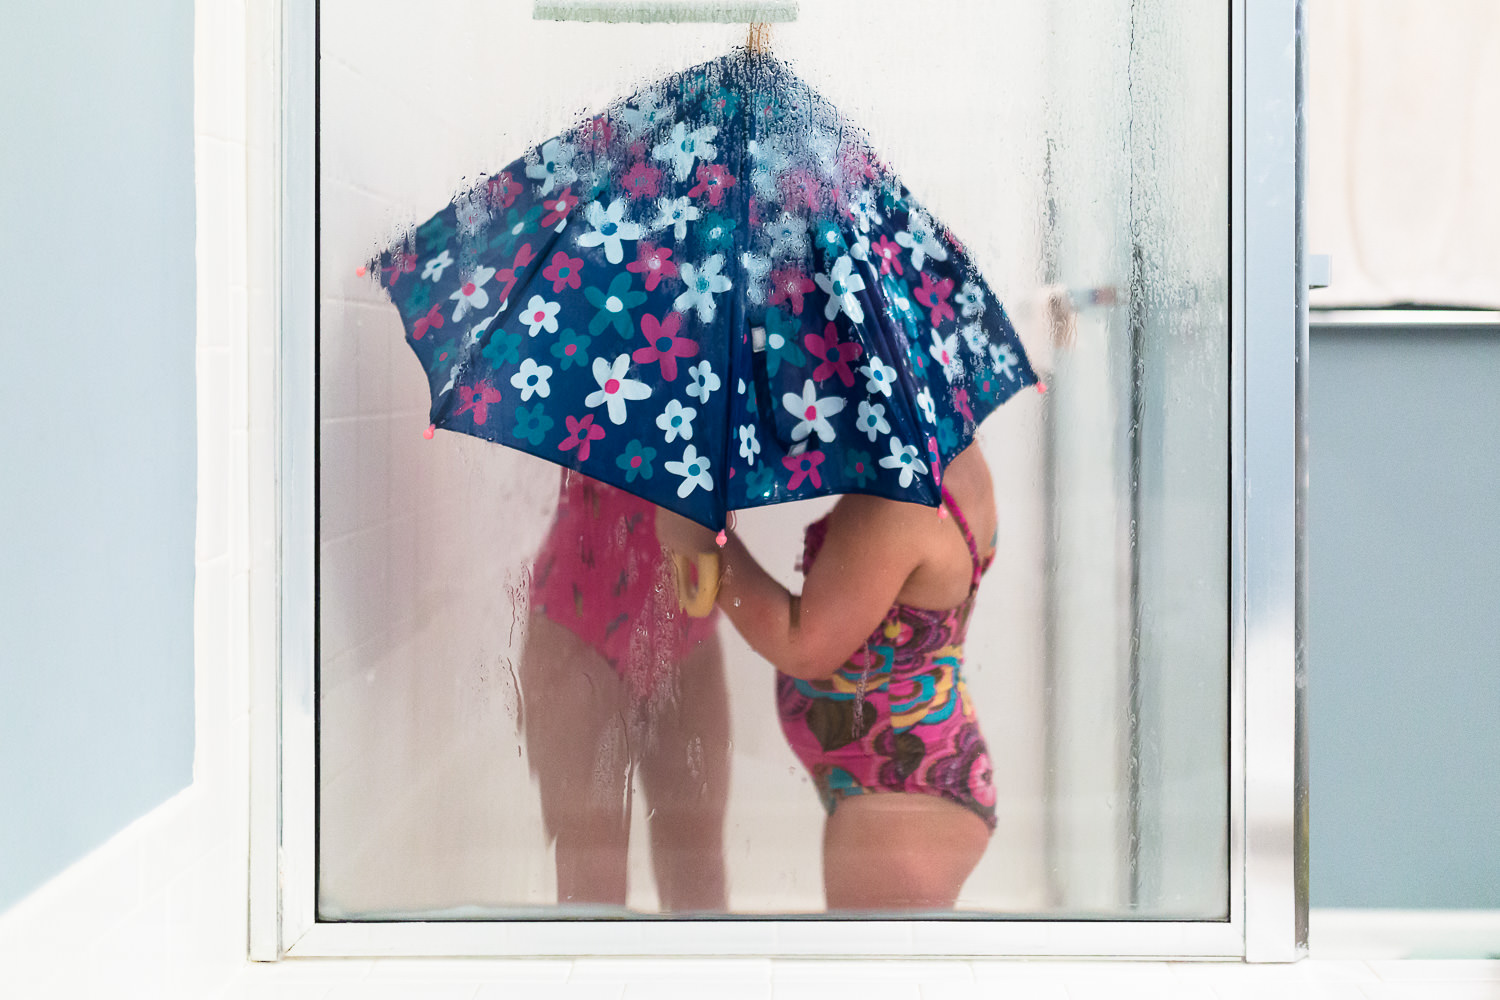 Two kids in shower wearing bathing suits under an umbrella